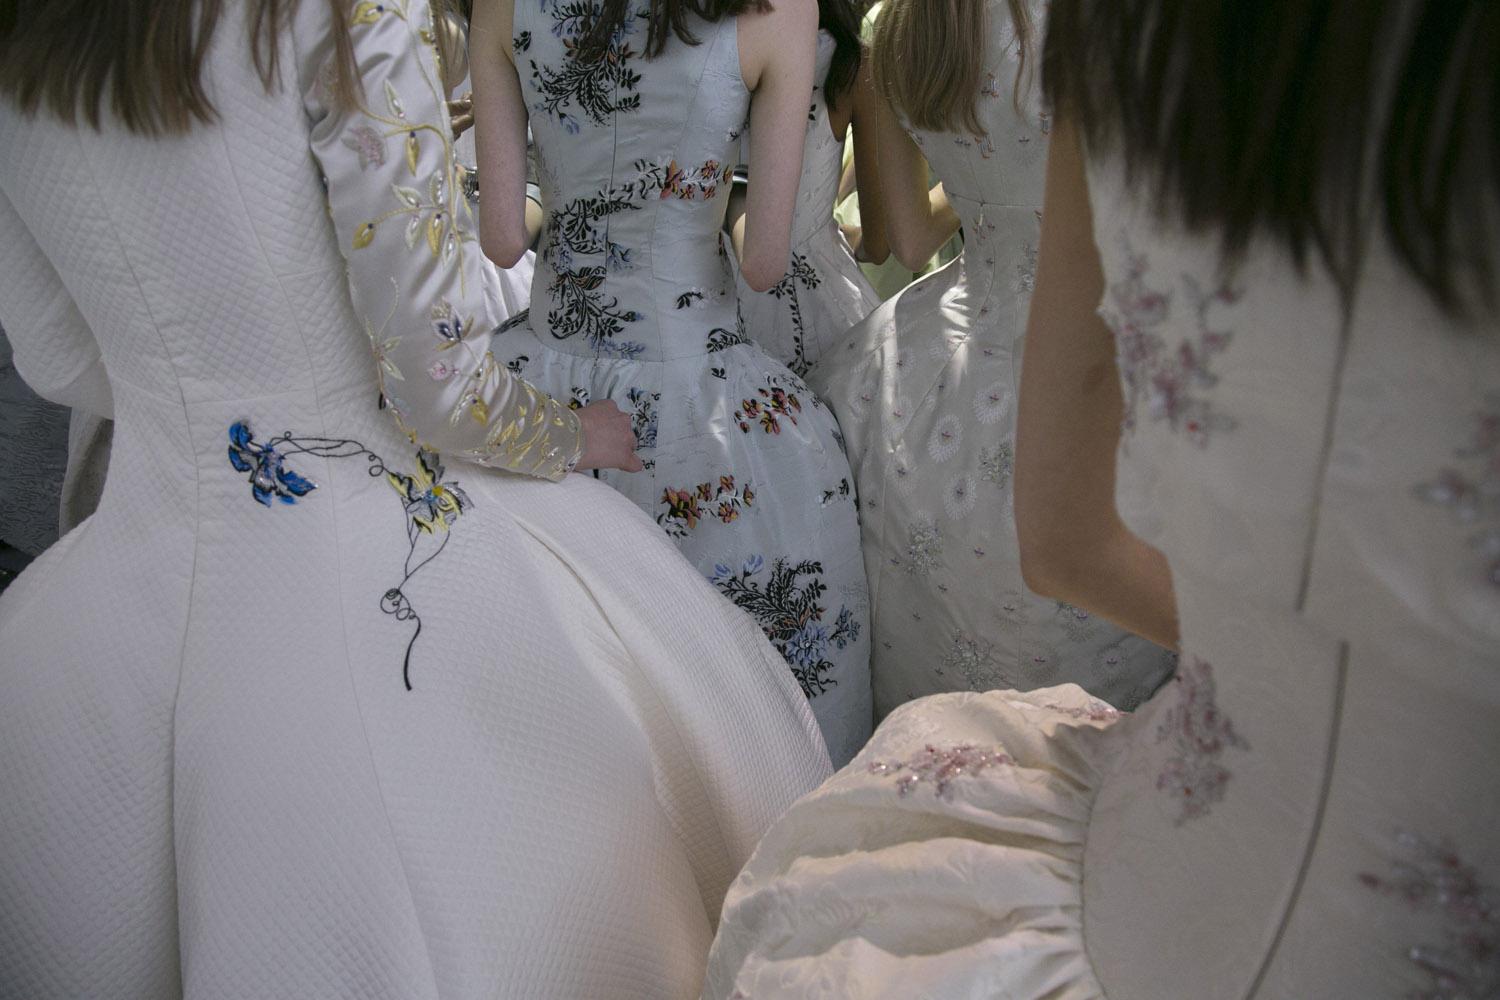 Jul. 7, 2014. Dresses at the Christian Dior Fashion Show in Paris. The Paris shows played out against a backdrop of almost palpable conflict, but the fashion houses were united in a push for modernity.